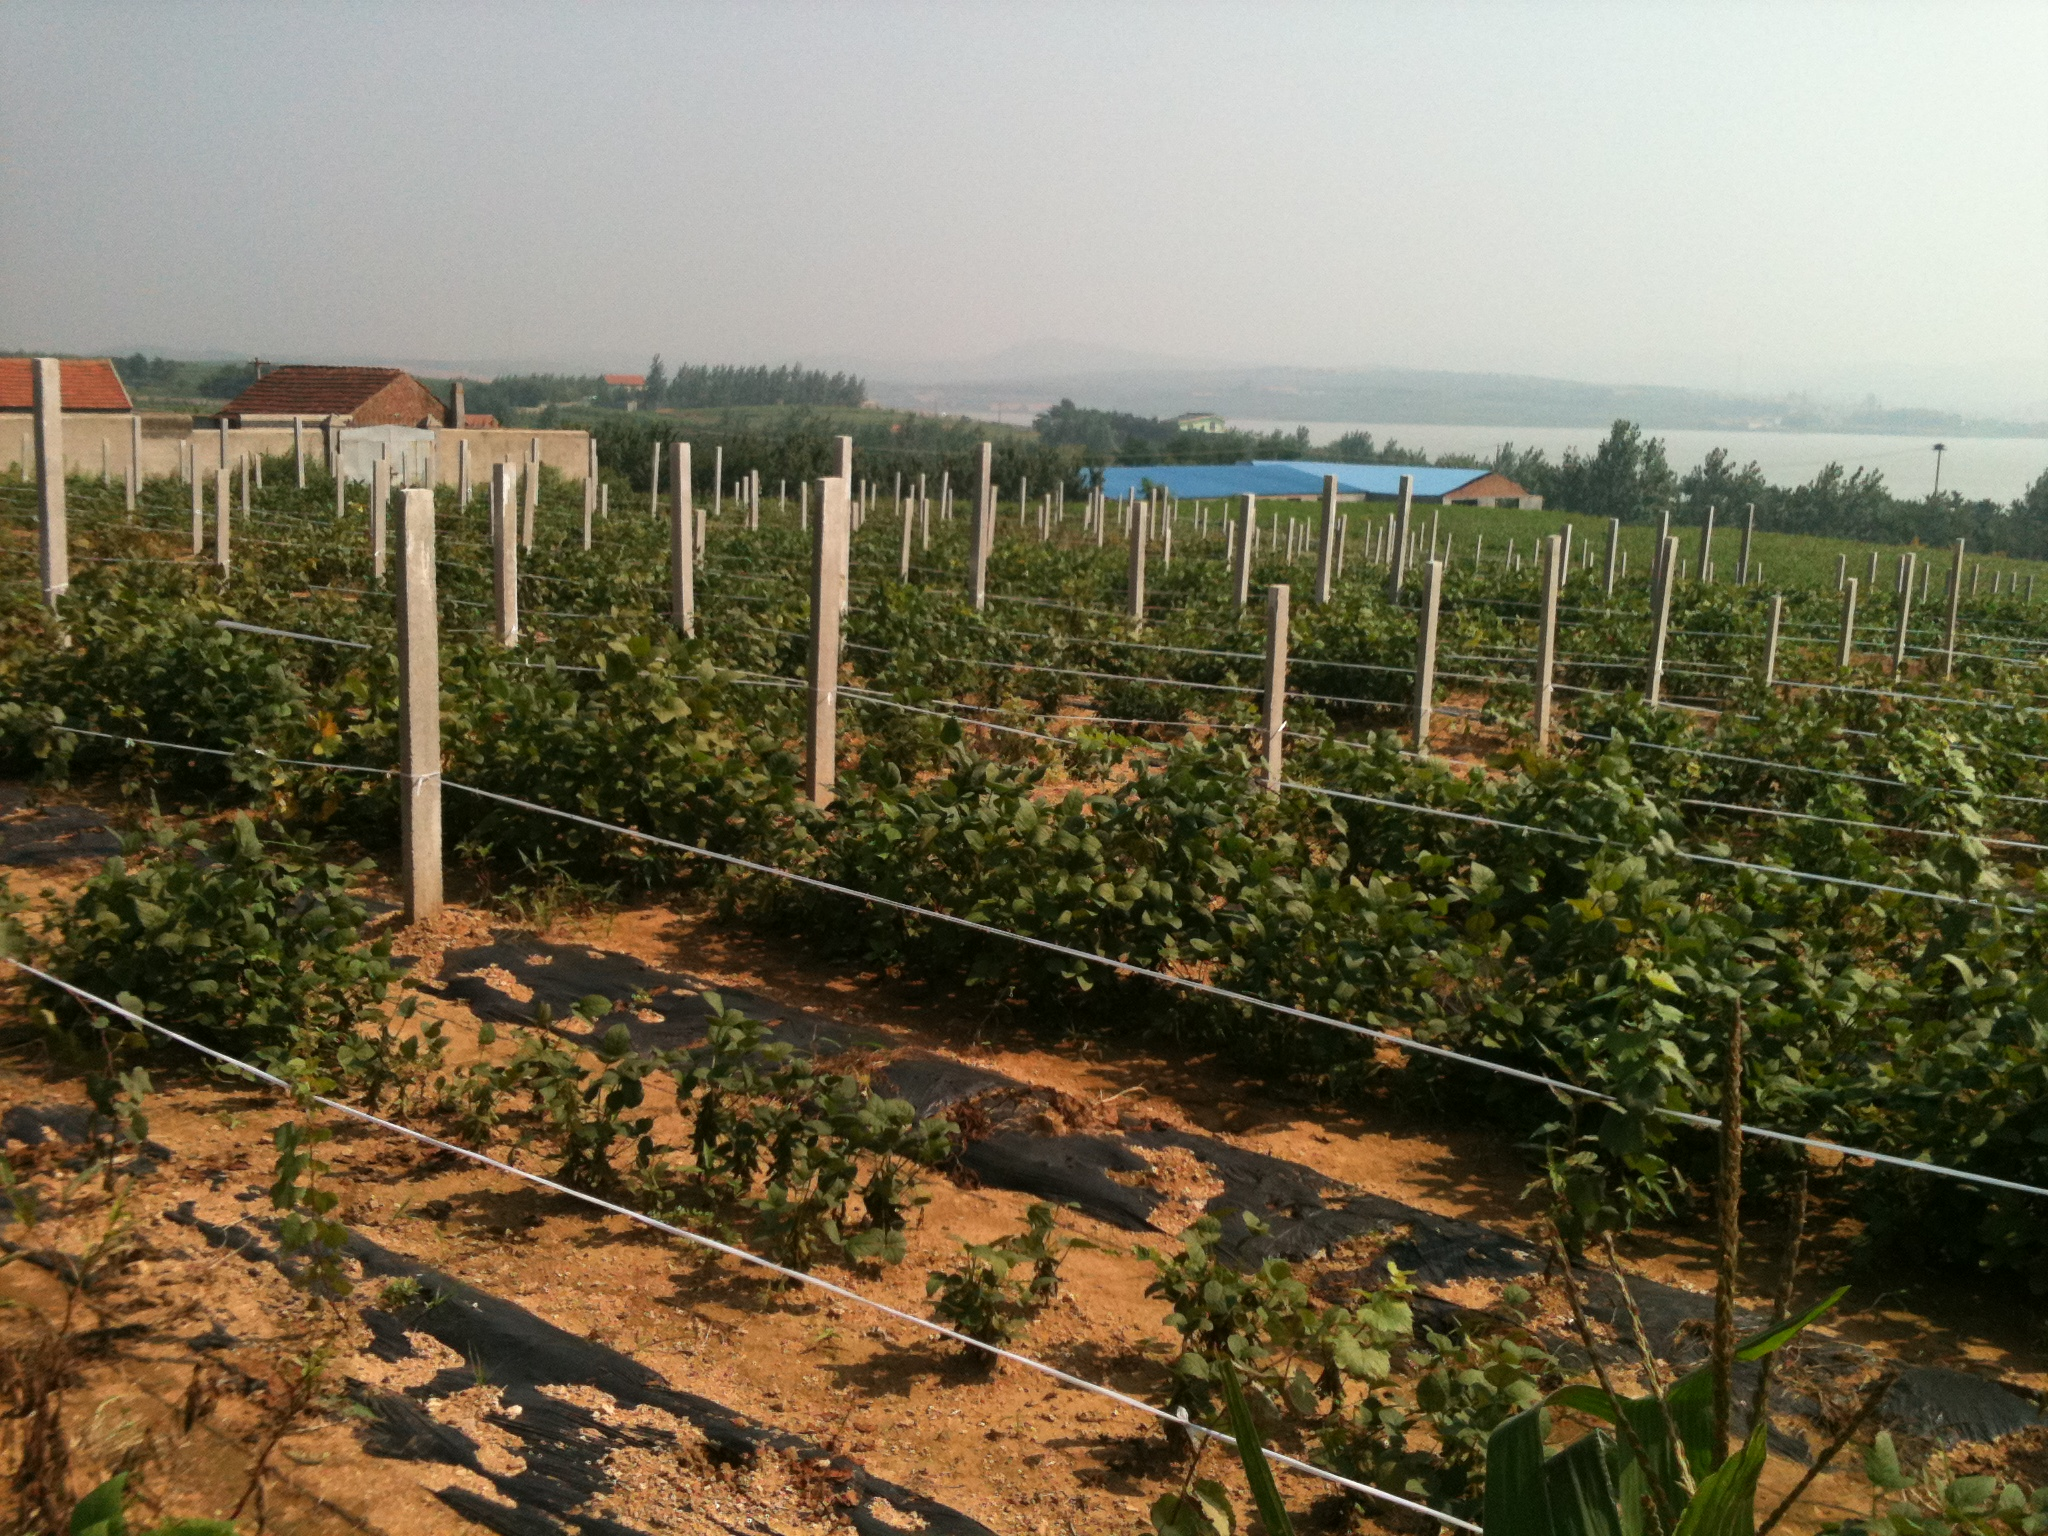 Creating a European Wine Region in Shandong